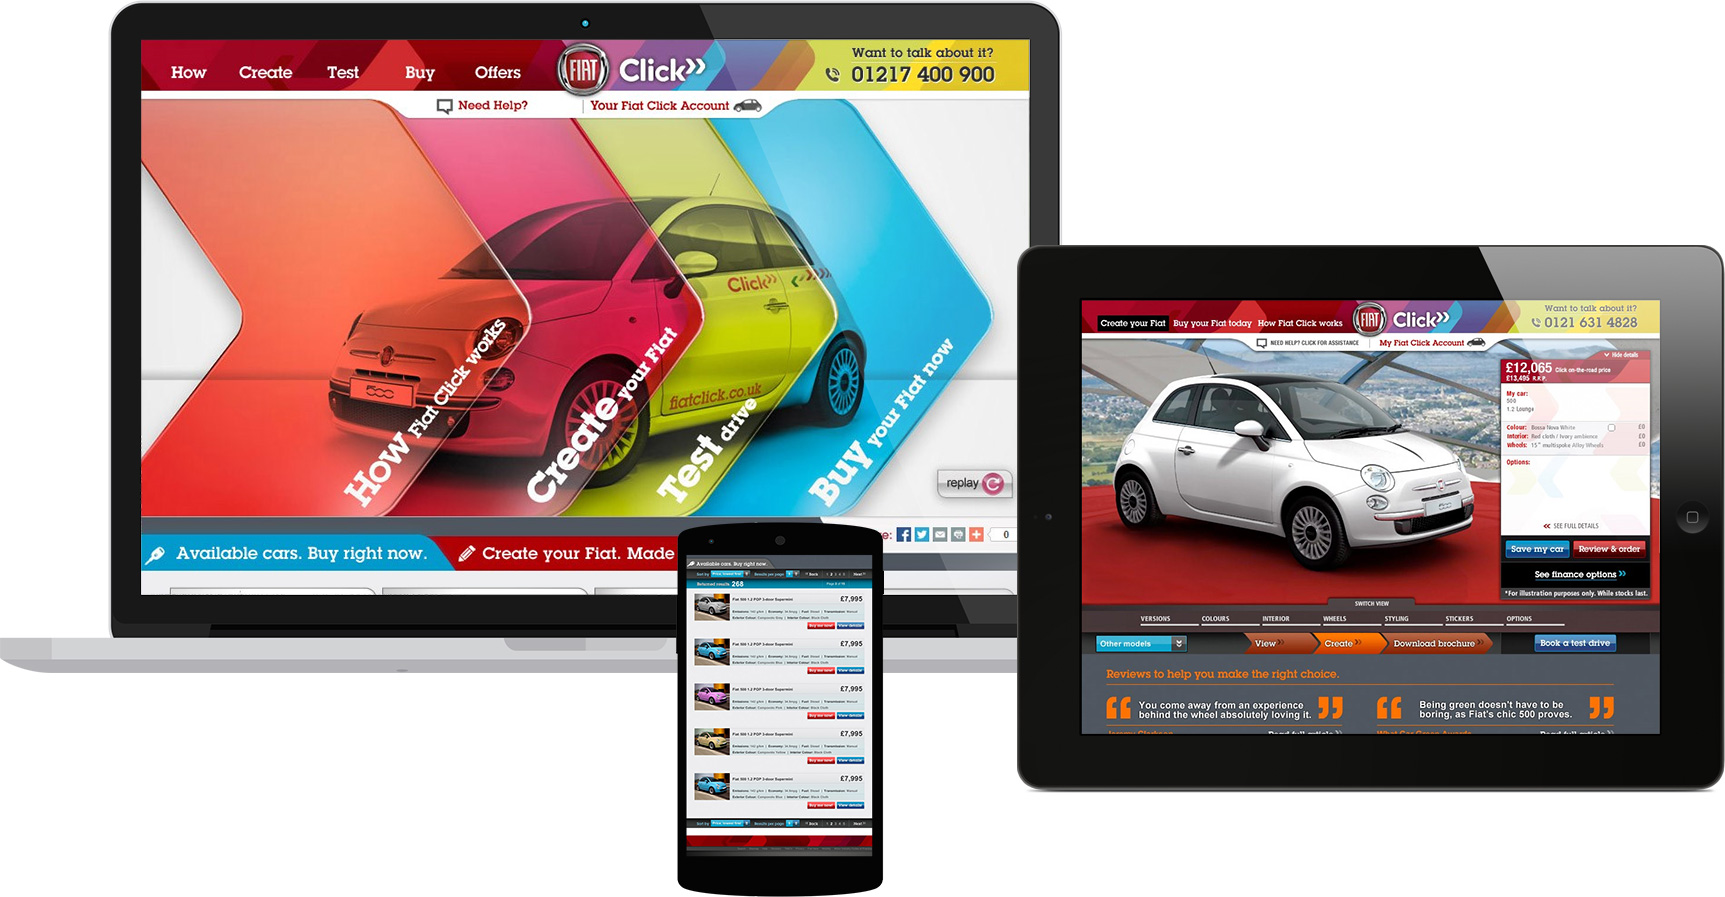 Fiat Click on devices